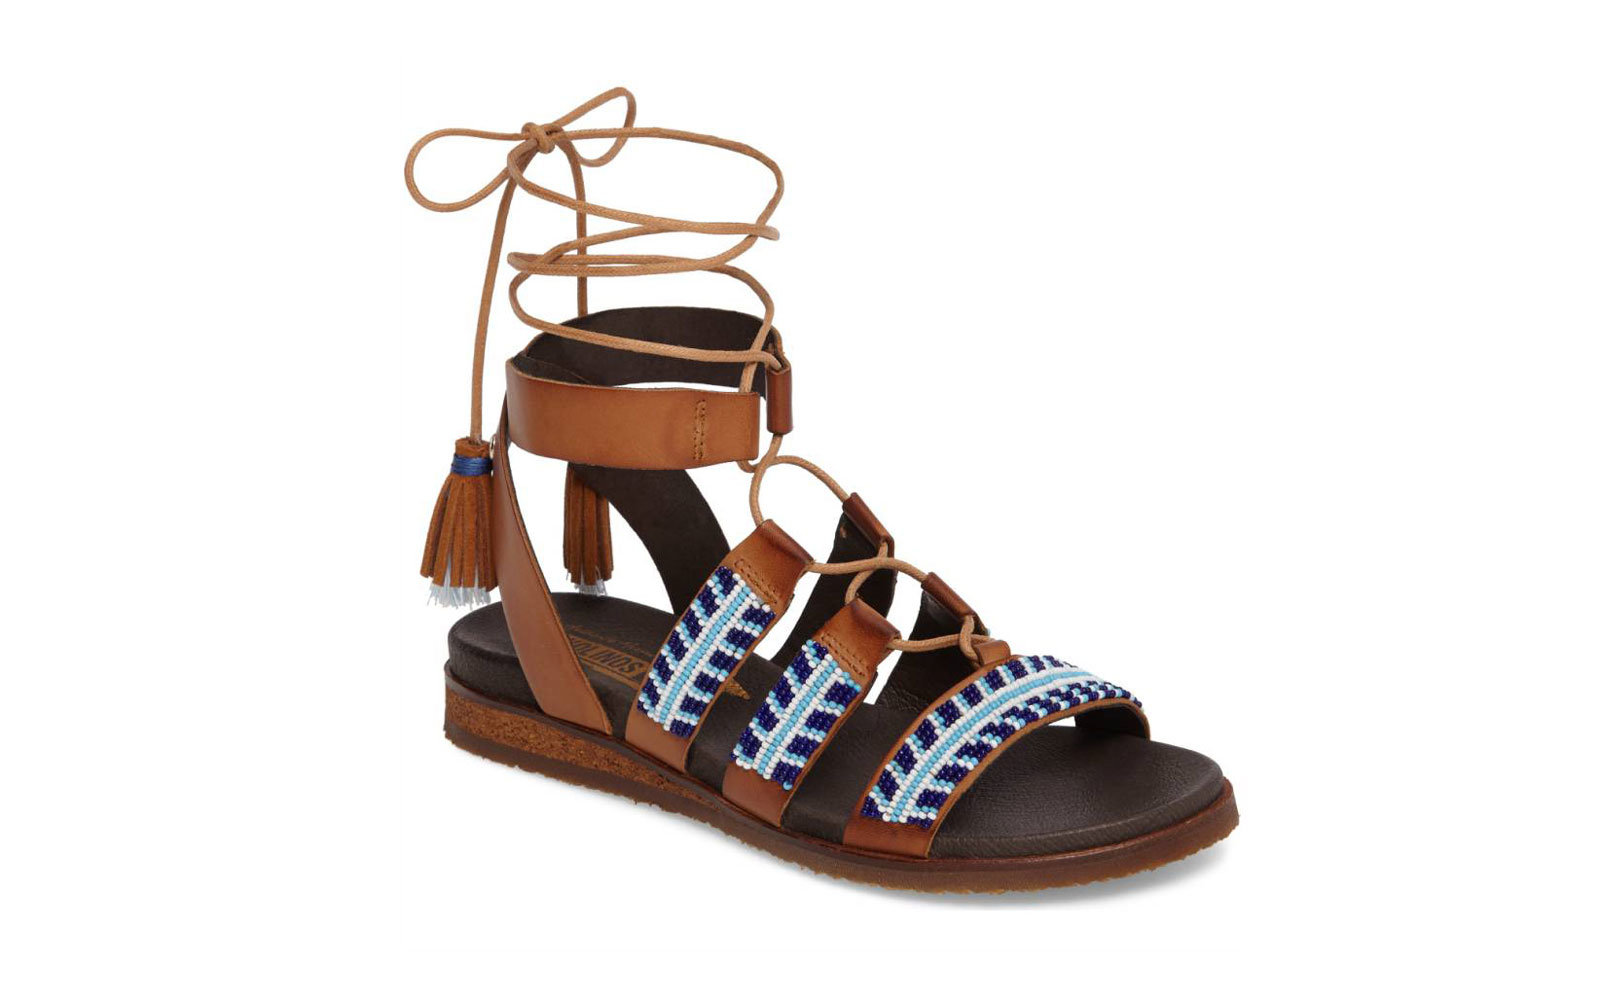 d9737cbcc Pikolinos Alcudia Hand Beaded Sandal in Cacao Olmo Leather. Beach Vacation  Sandals